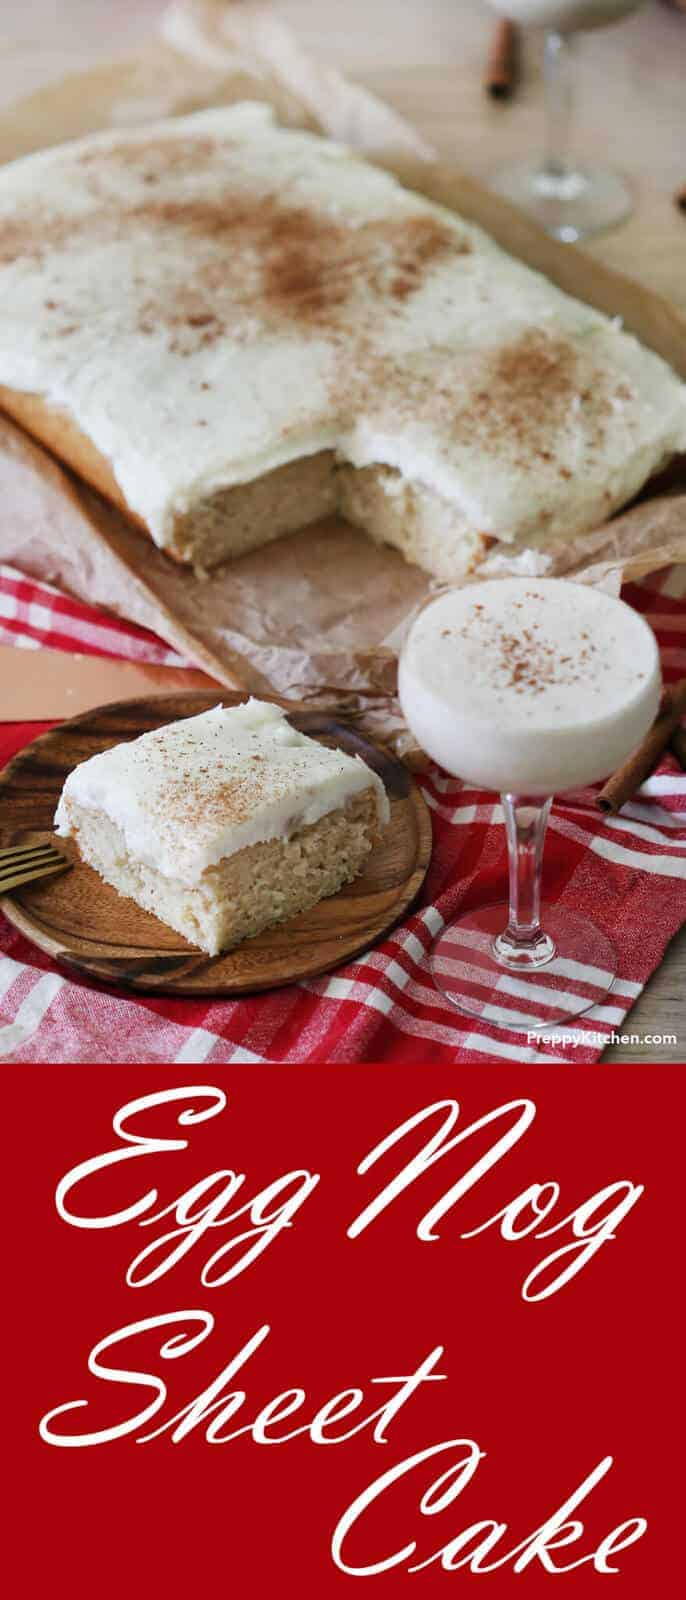 This moist cake contains layers and layers of creamy eggnog deliciousness. Infused with pudding and topped with a dreamy buttercream, this cake is perfect for any holiday get together!